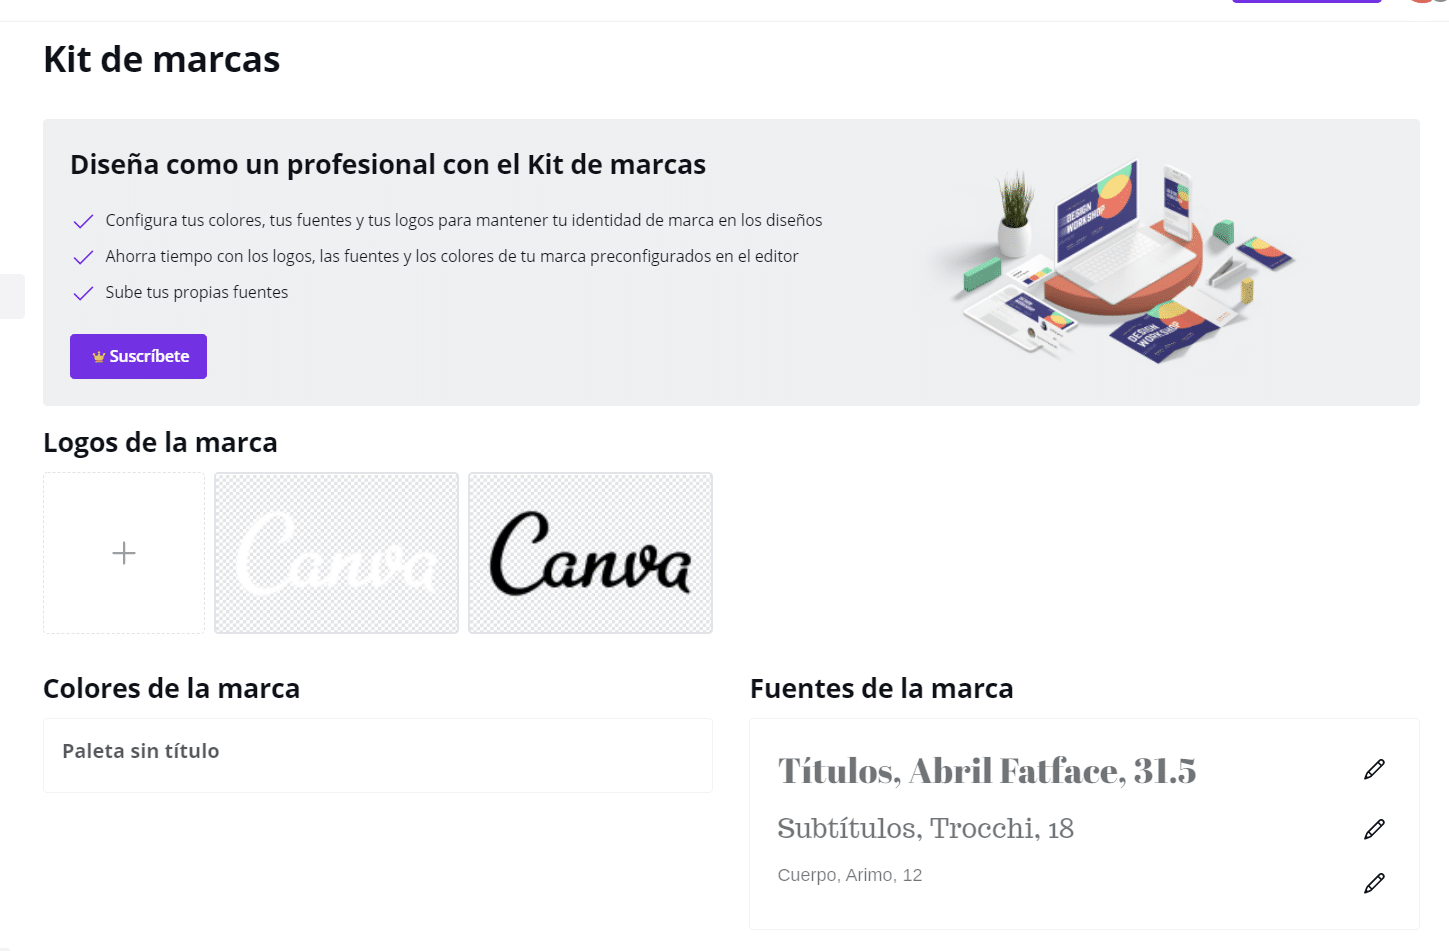 Tutorial de Canva 14: Kit de marcas